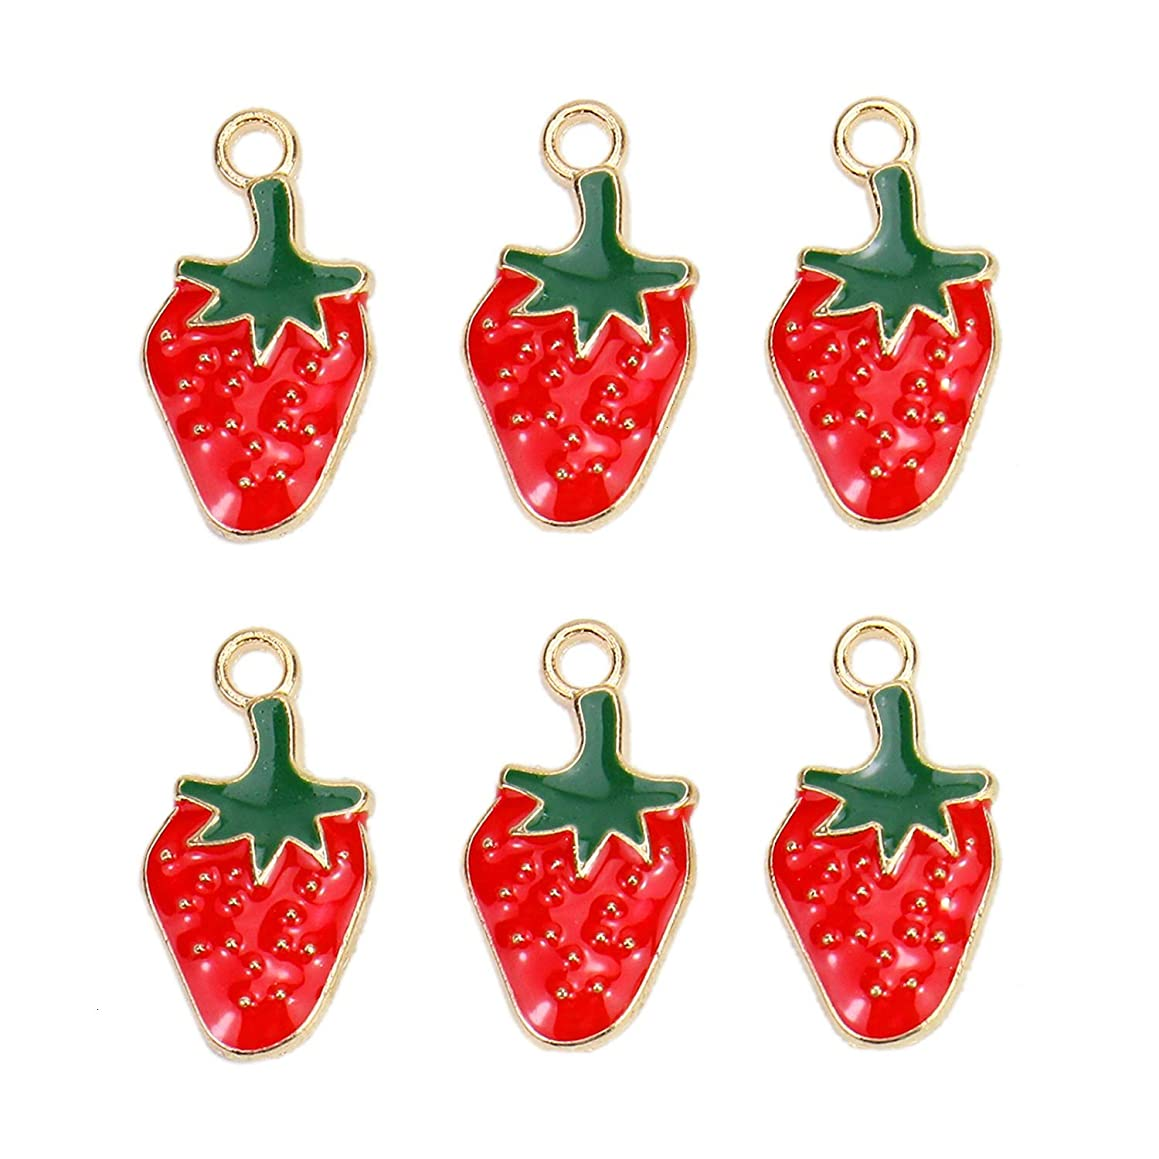 Monrocco 30Pcs Enamel Strawberry Charm Fruit Charms Pendant for Jewelry Making Bracelet Necklace